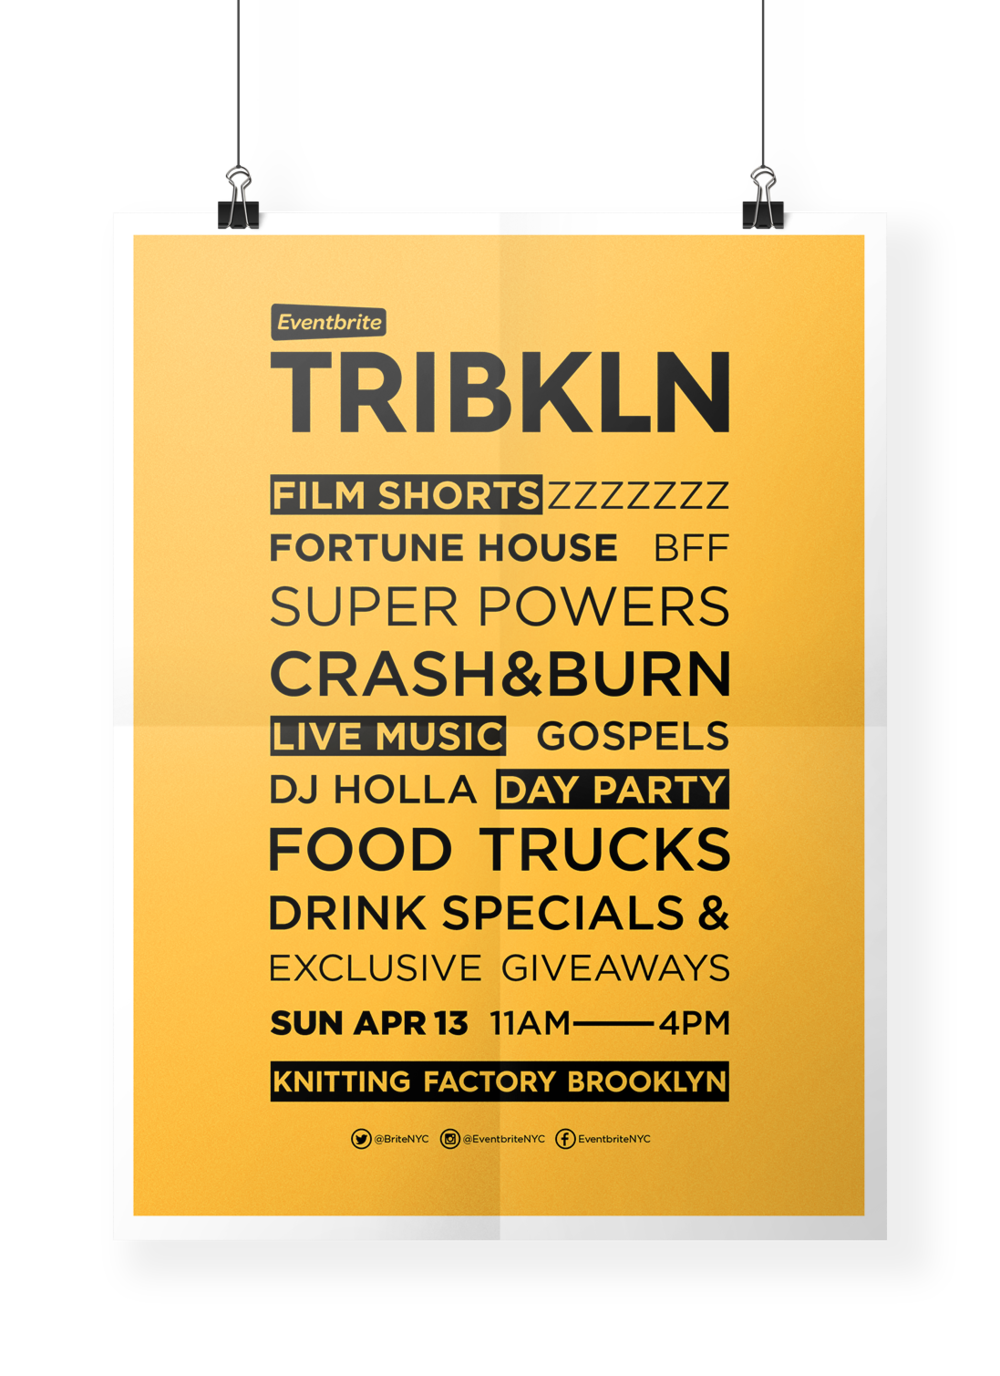 Eventbrite TRIBKLN